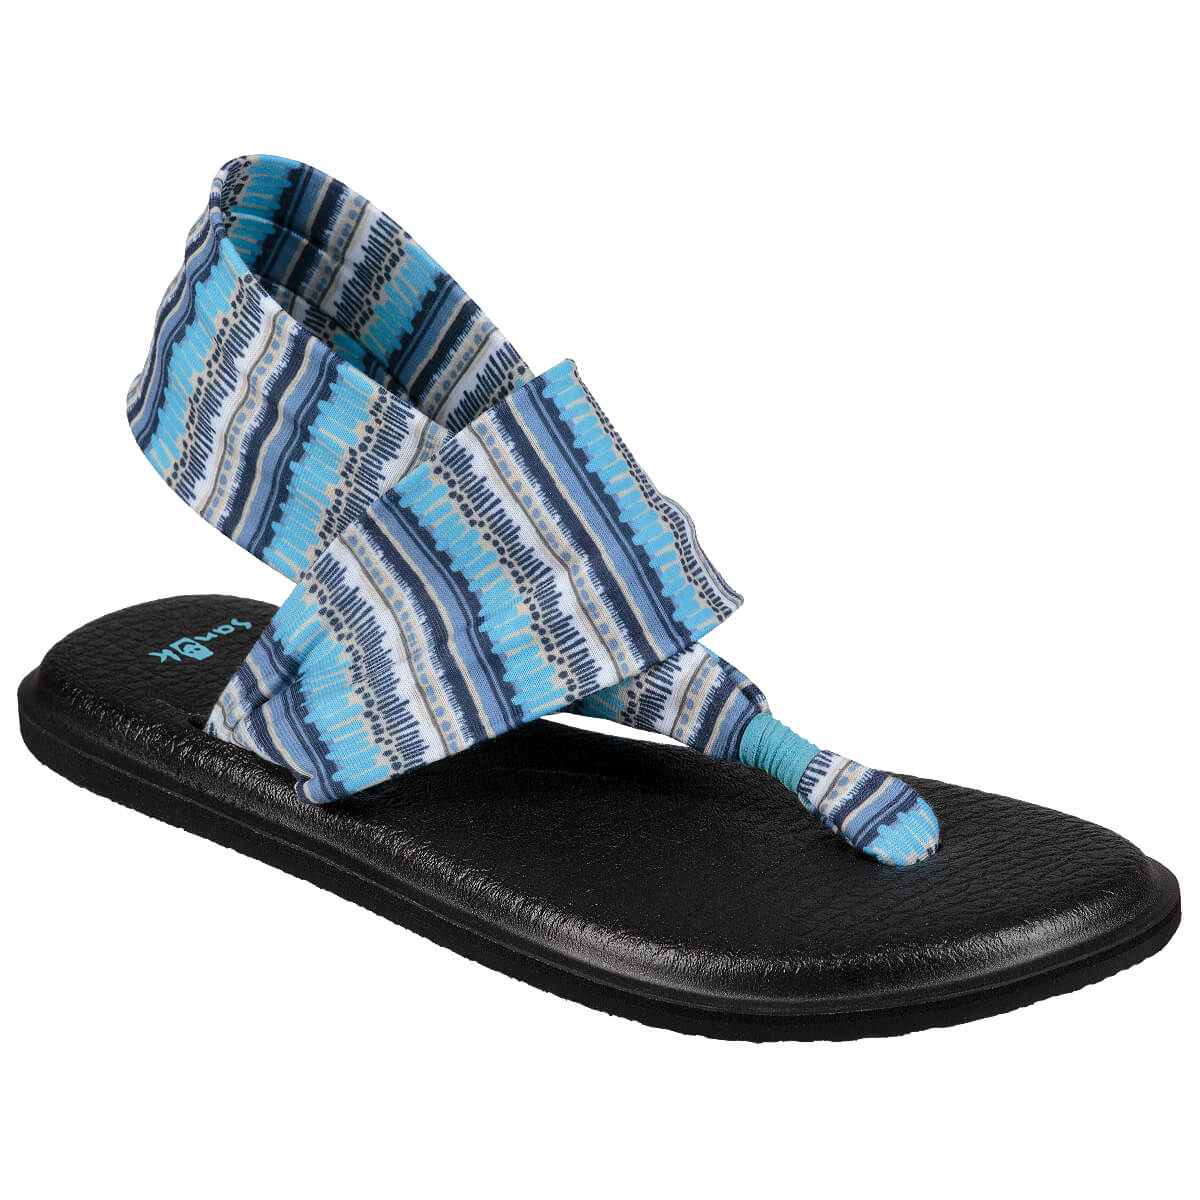 Sanuk Yoga Shoes Amazon: Sanuk Yoga Sling 2 Prints - Sandals Women's